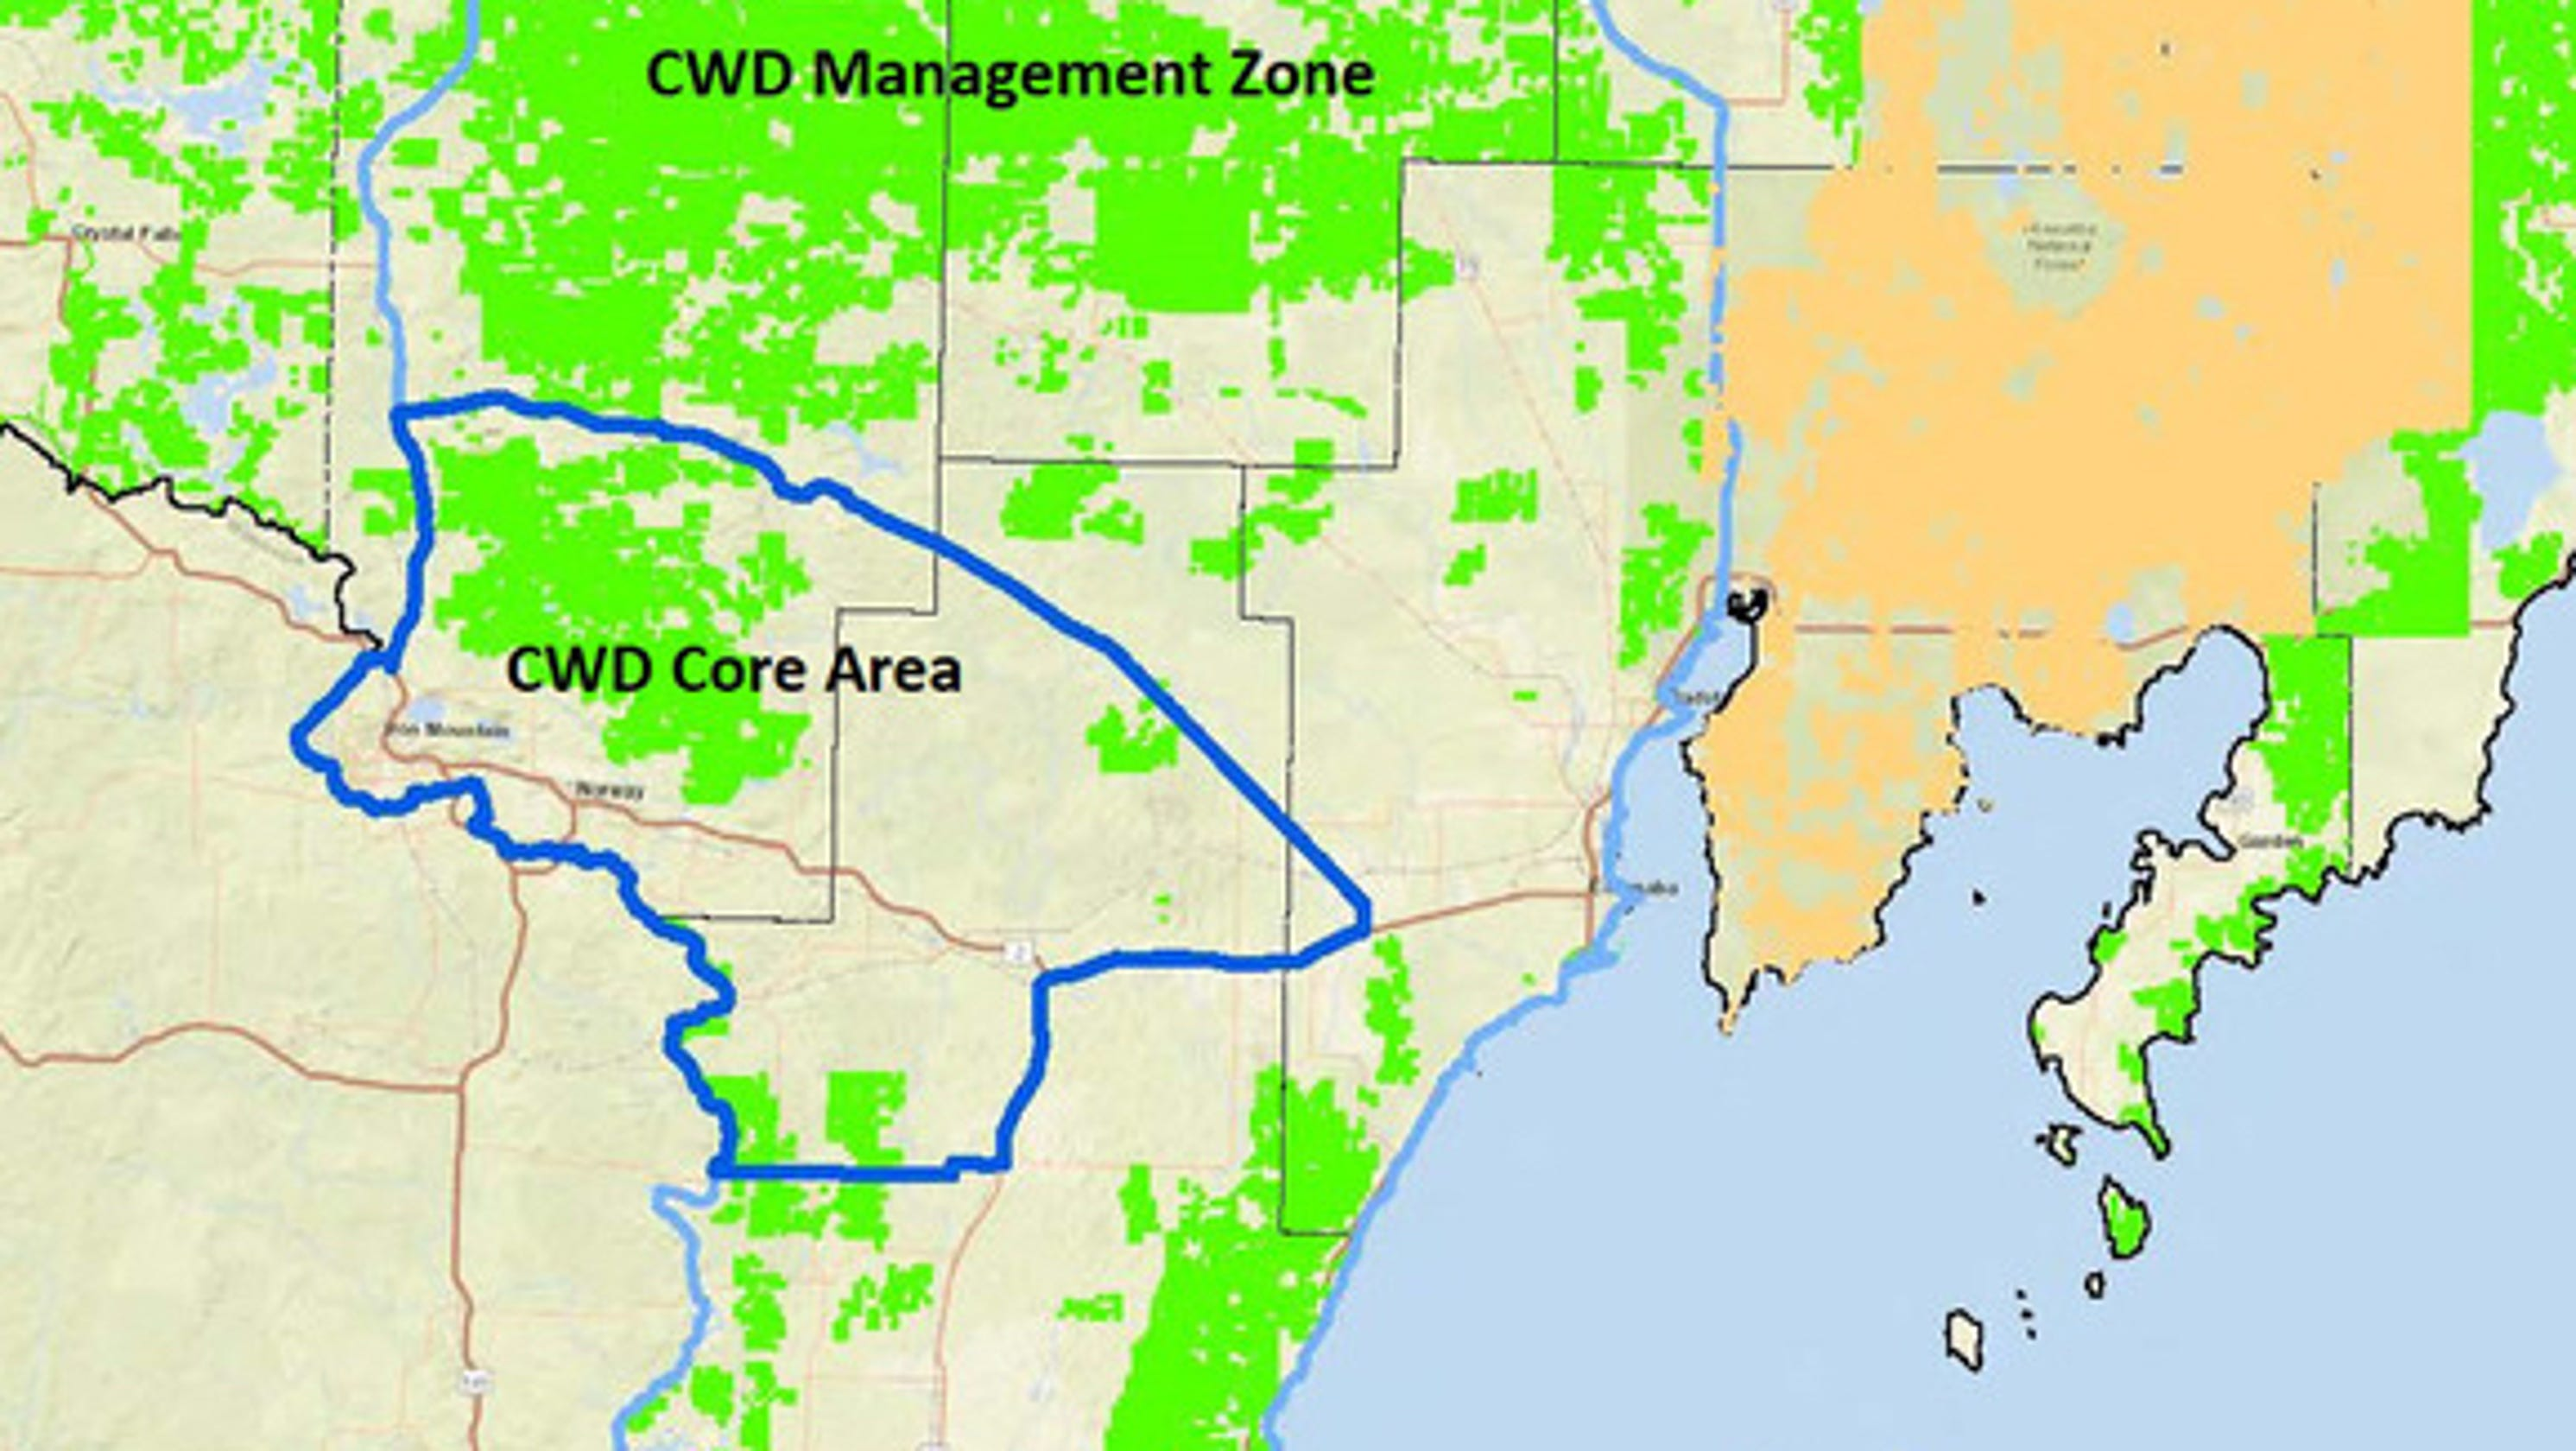 CWD found for first time in Michigan's Upper Peninsula on michigan resources, michigan parcel map, for hunting zones map, michigan hunting maps, michigan world map, michigan zip map, michigan water map, michigan street map, michigan route map, michigan storm map, michigan rifle zones, michigan information, michigan power map, michigan temperature map, michigan section map, michigan network map, michigan district map, michigan color map, michigan regions map, michigan grid map,